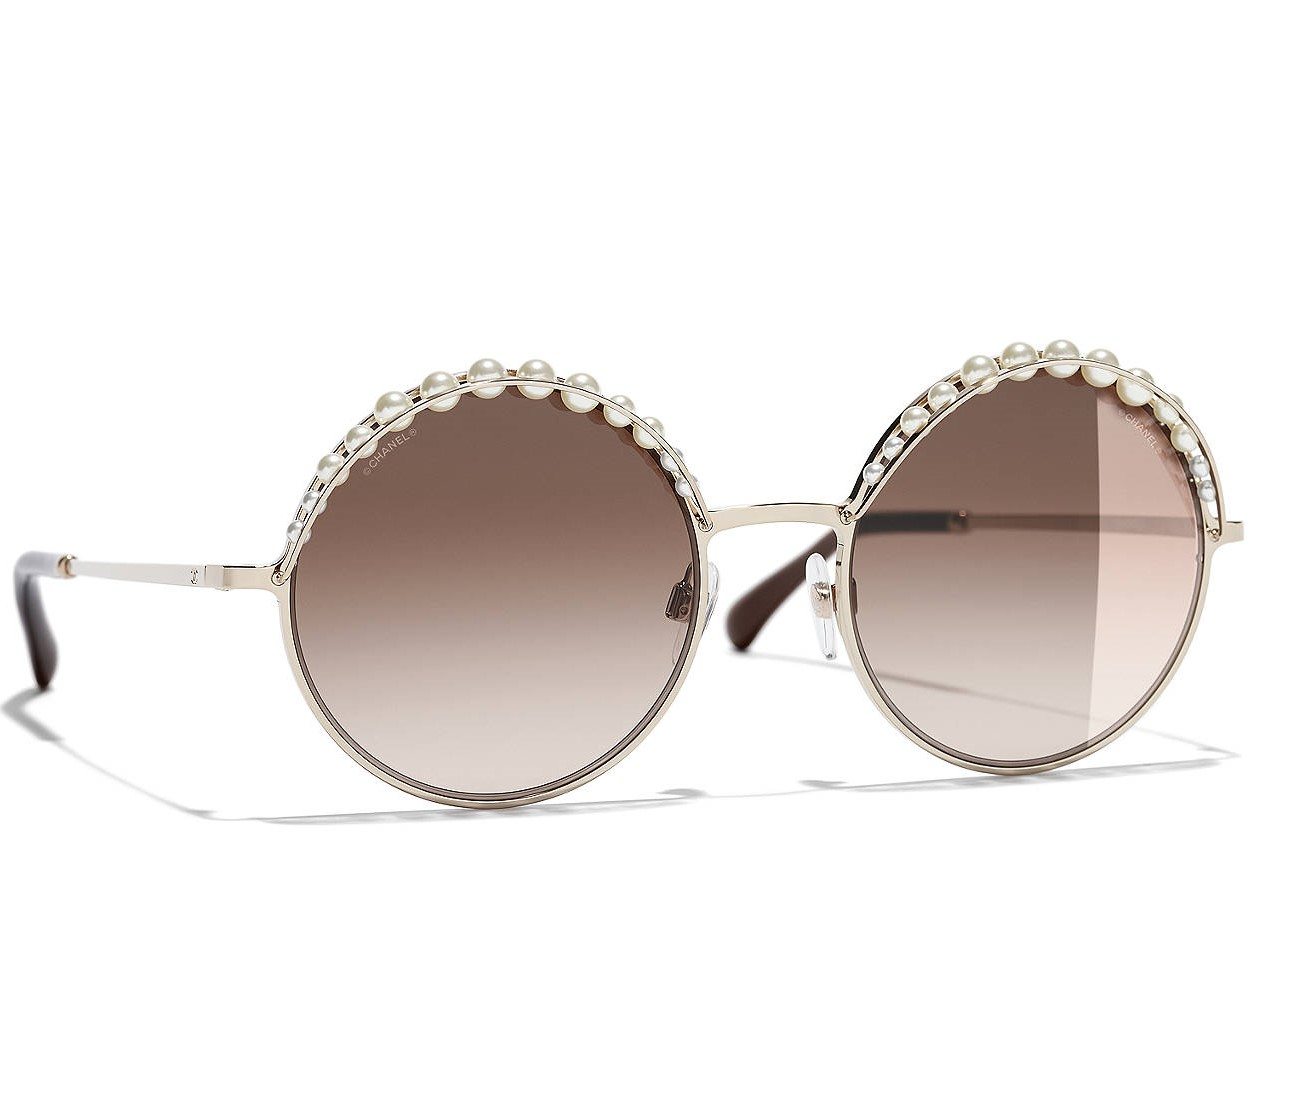 d38241401c95 Chanel Round Pearl Sunglasses CH4234H - Current